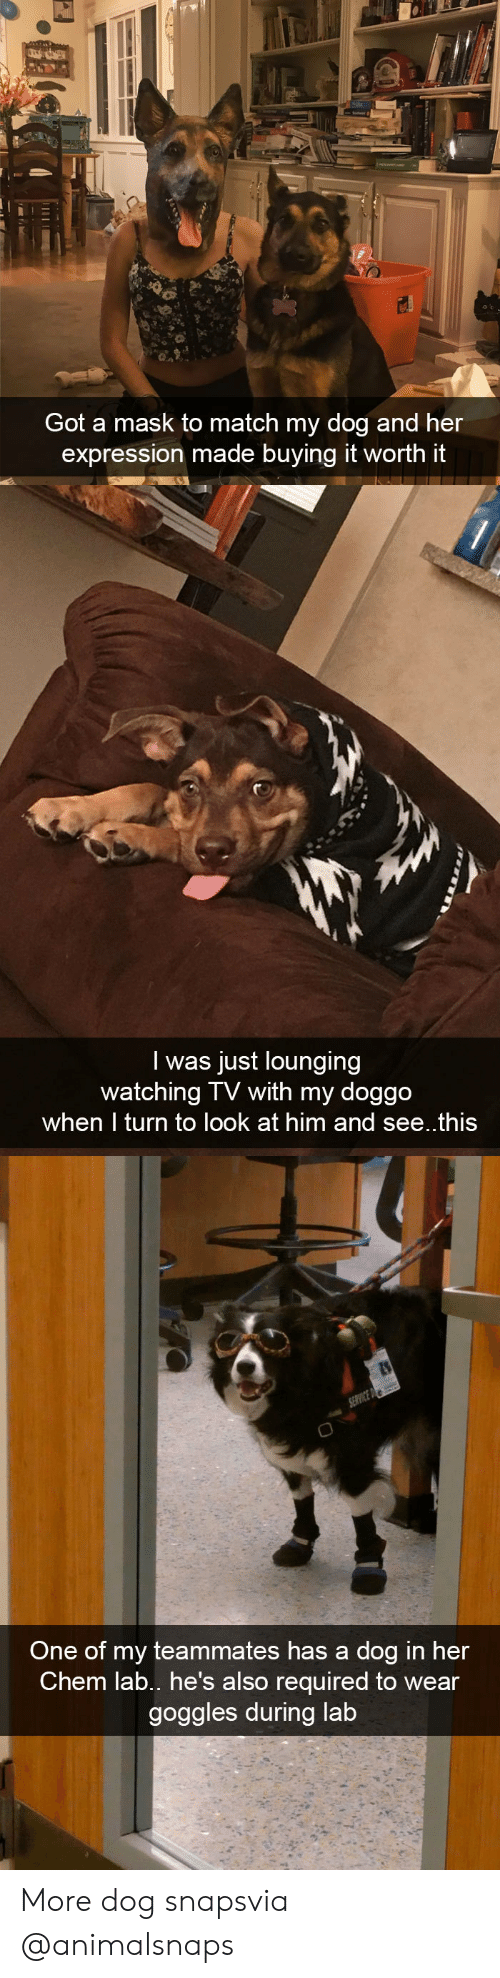 watching tv: Got a mask to match my dog and her  expression made buying it worth it   I was just lounging  watching TV with my doggo  when I turn to look at him and see..this   One of my teammates has a dog in her  Chem lab., he's also required to wear  goggles during lab More dog snapsvia @animalsnaps